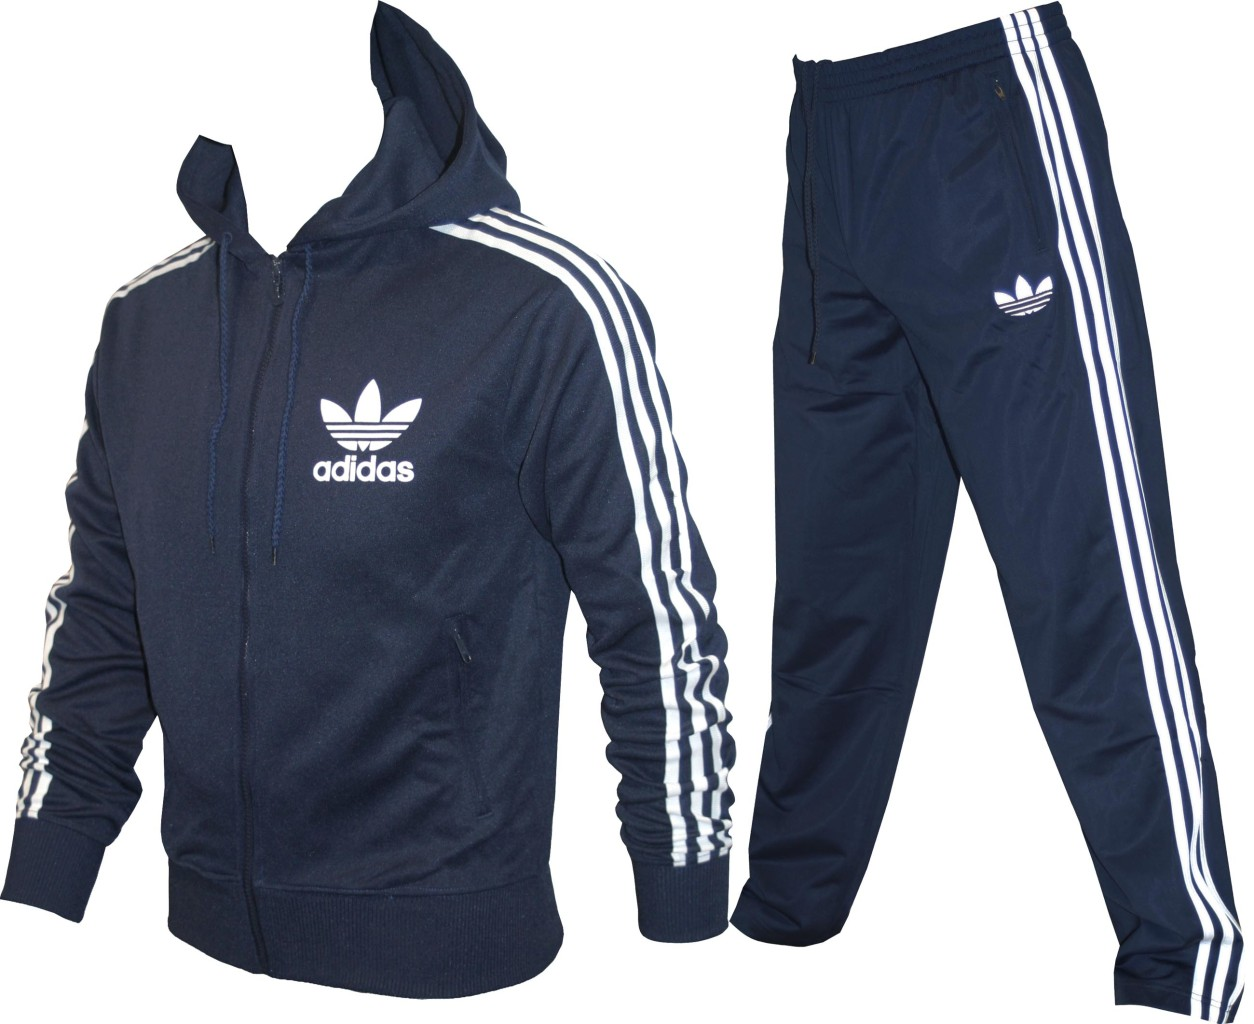 adidas originals tracksuit details about mens adidas originals 3 stripes tracksuit navy s m l xl FRYFODP